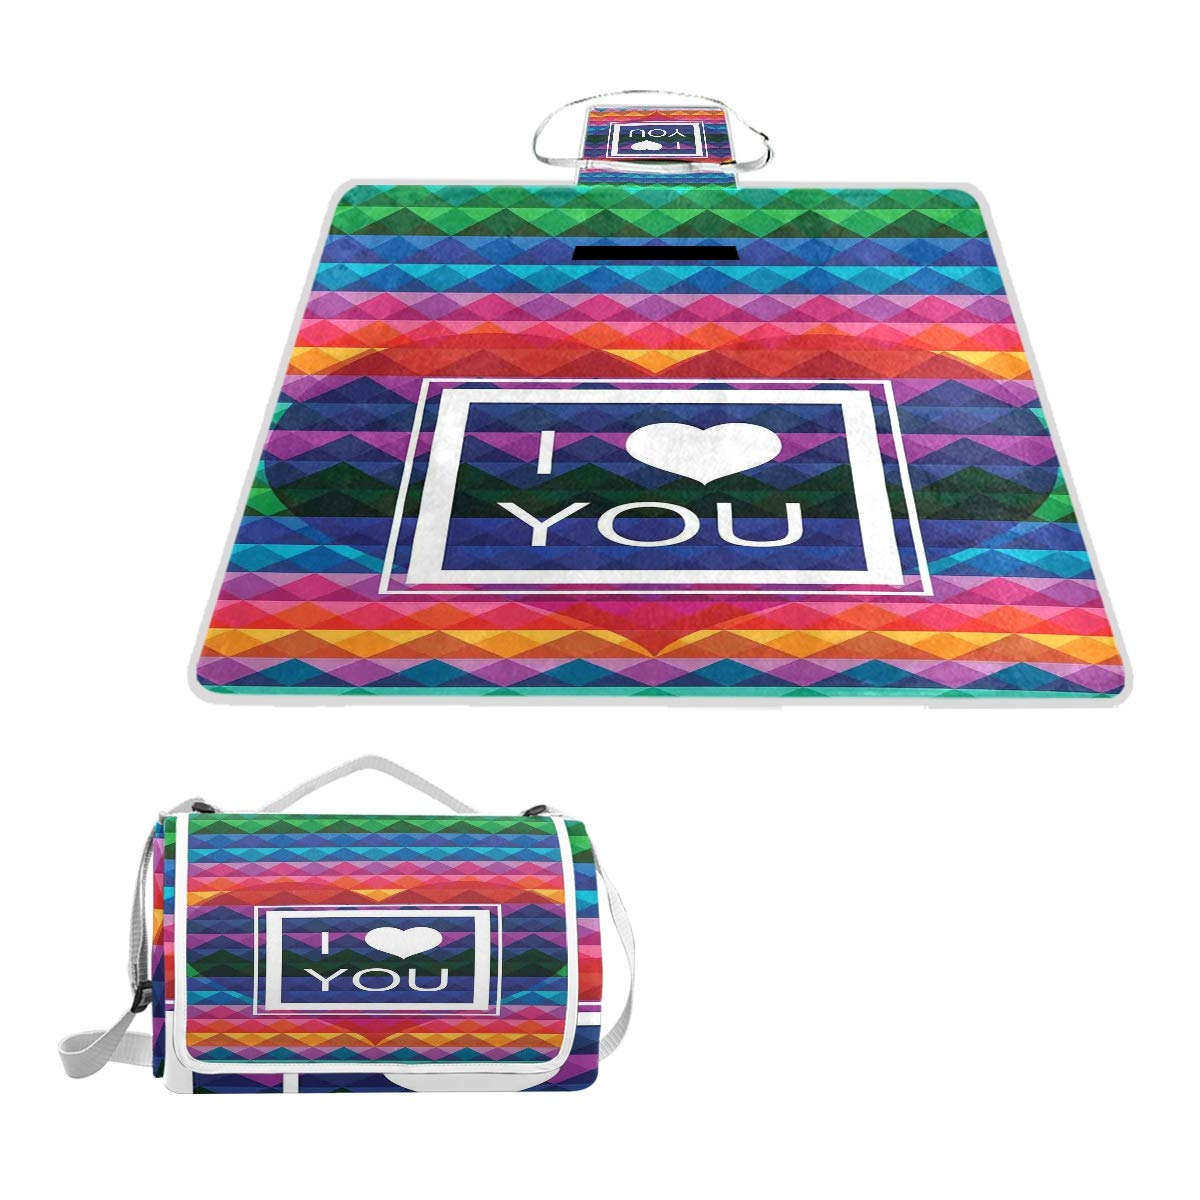 KVMV Colorful Fractal Mosaic Backdrop with Heart and Love You Frame Valentines Picnic Mat Sandproof and Waterproof Outdoor Picnic Blanket for Camping Hiking Beach Grass Travel by KVMV